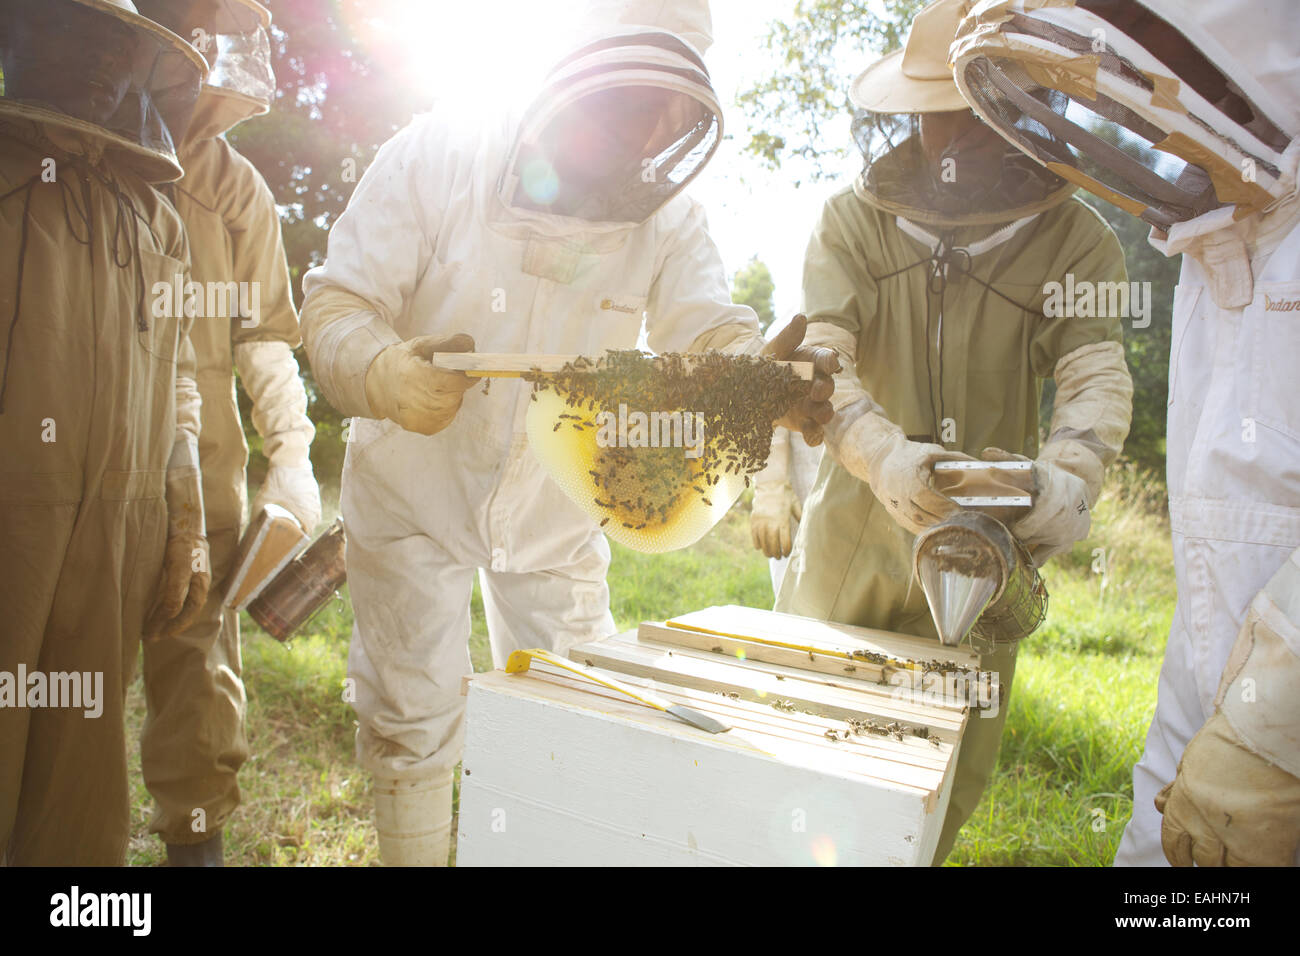 Kenyans Learn The Method Of Top Bar Beekeeping. Tree Of Life Beekeeping  Teaches This Method Of Beekeeping All Over East Africa